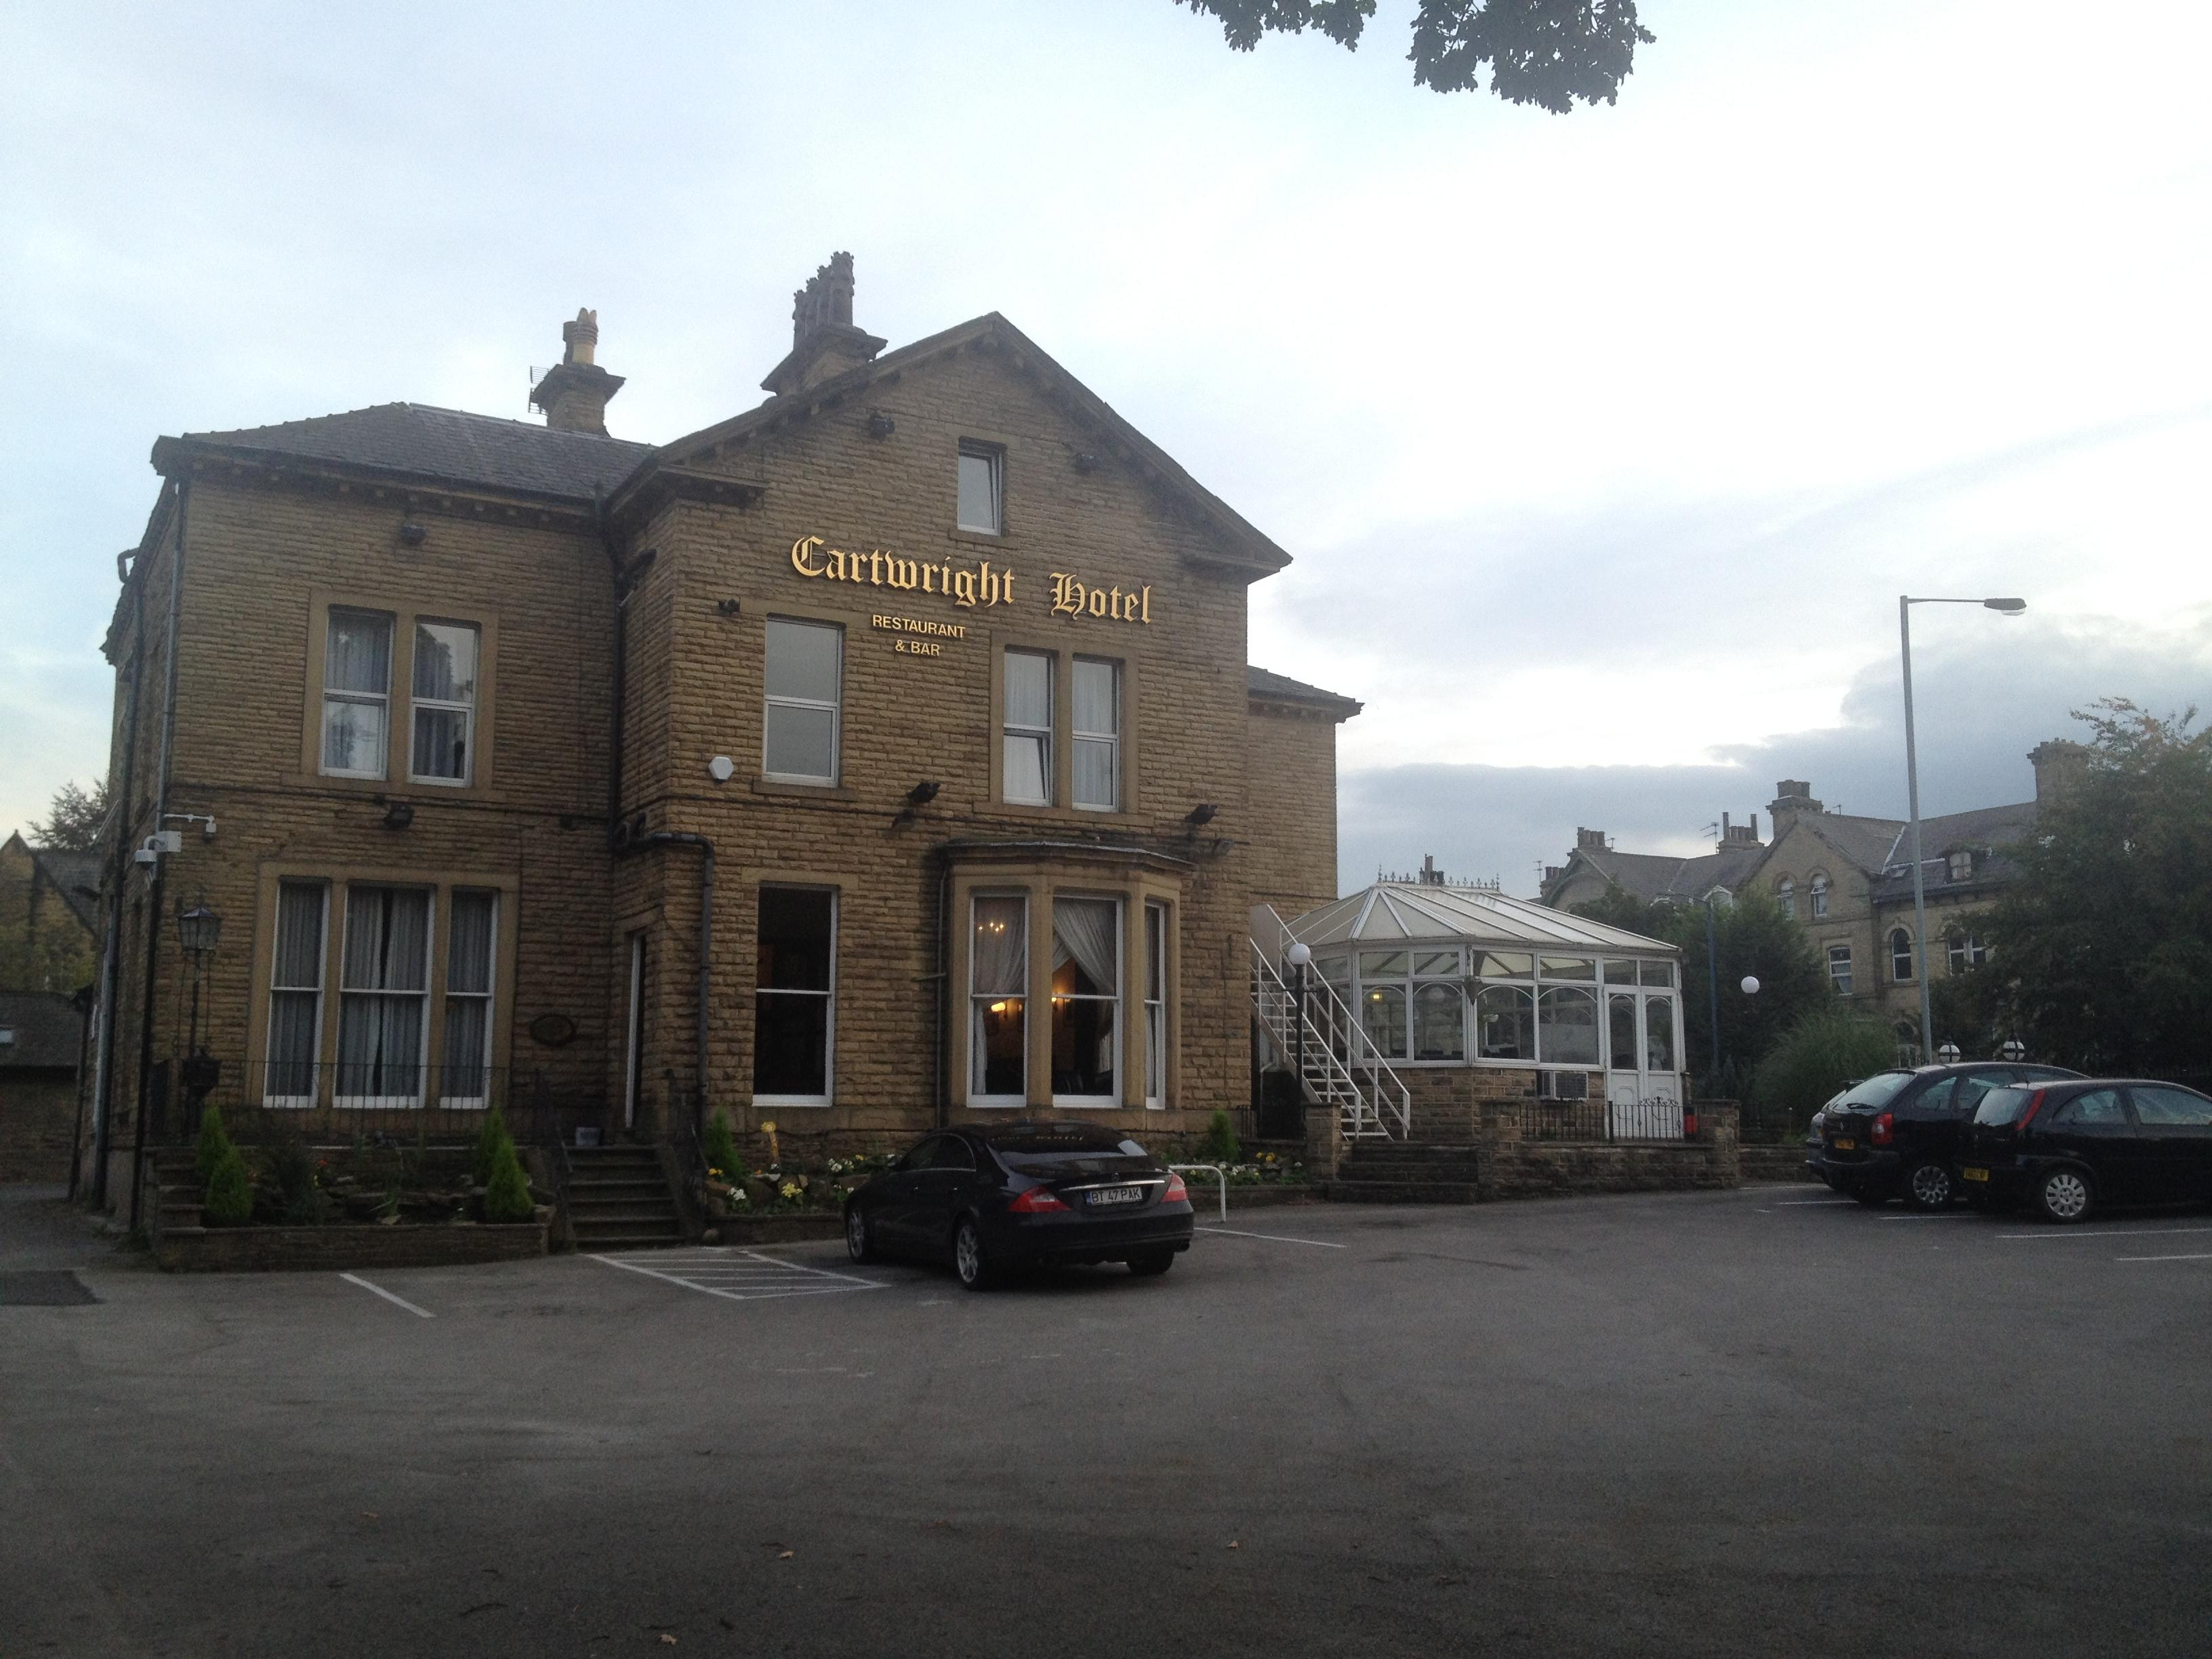 The Cartwright Hotel